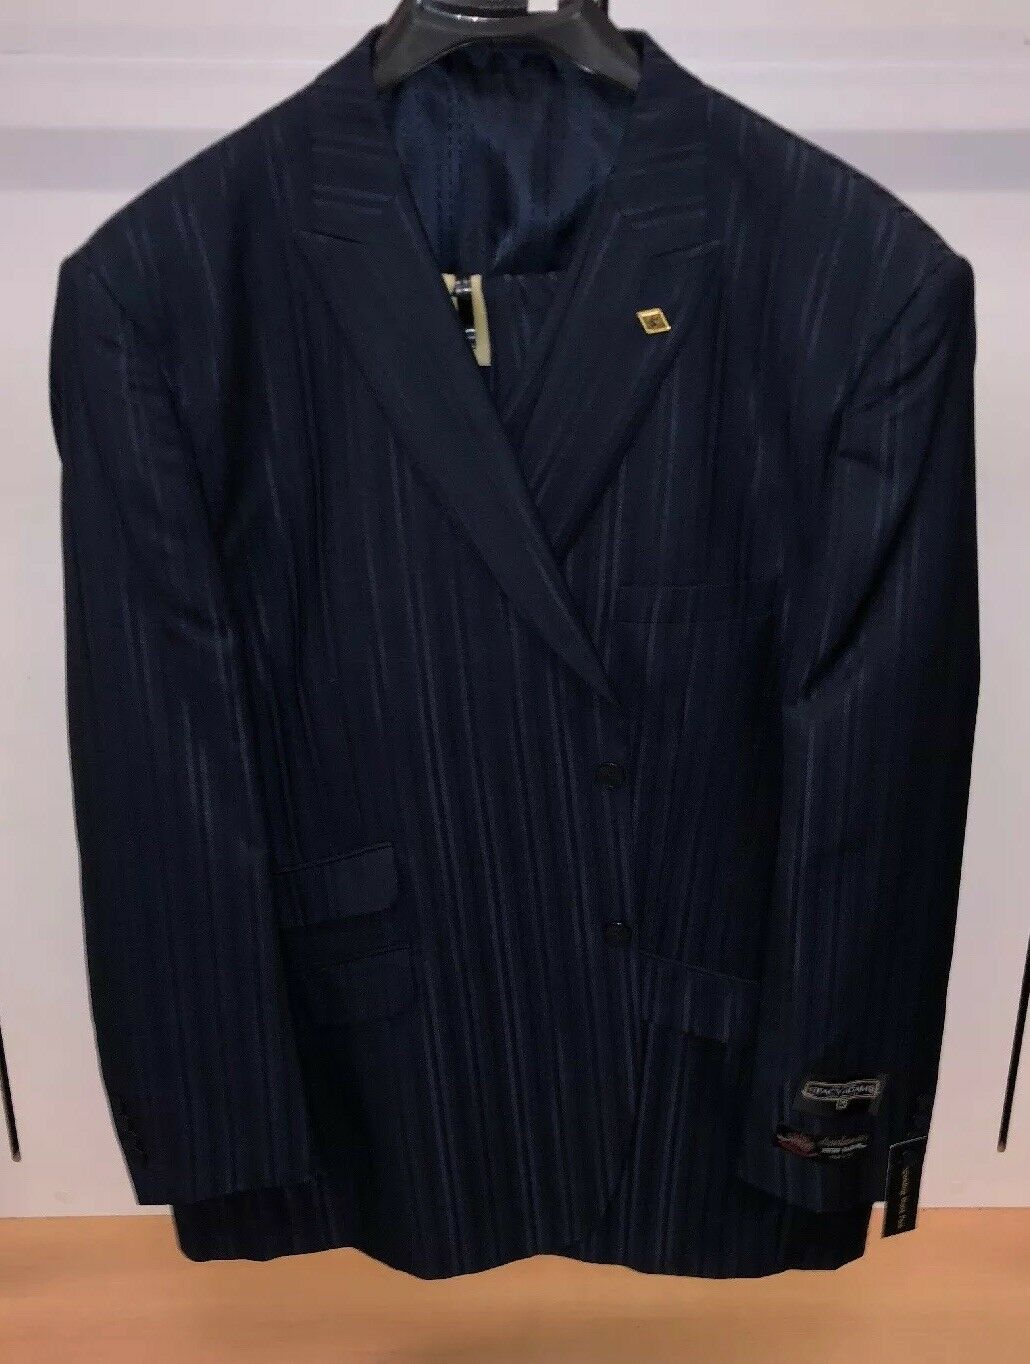 NWT Stacy Adams 36R Navy Blau Fashion Striped Exotic Harvey Suit 3PC WOW Steve